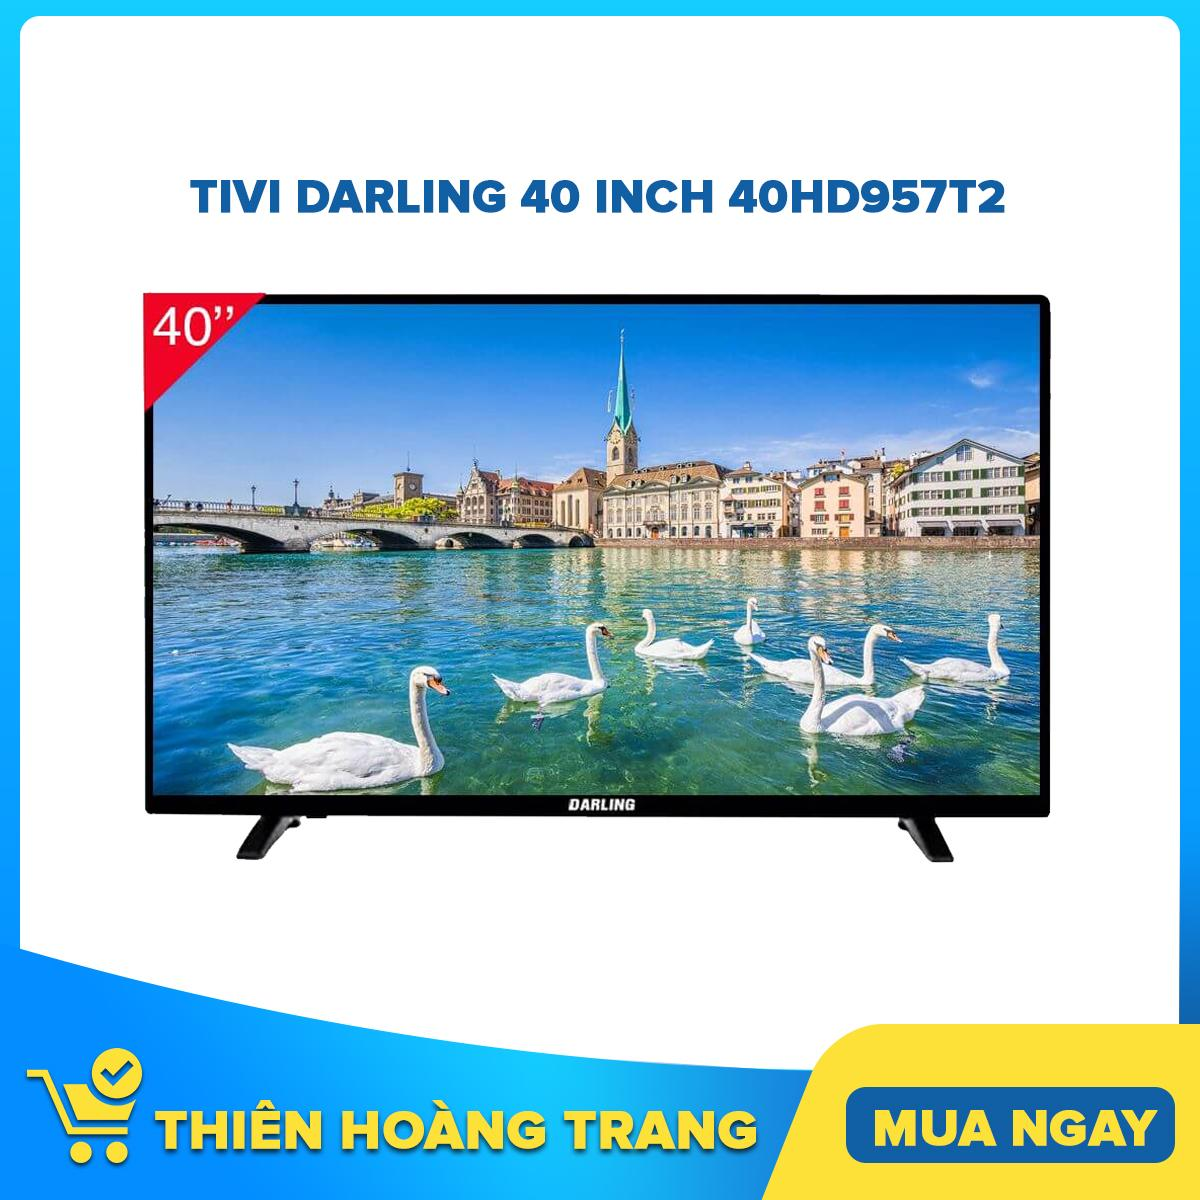 Tivi Darling 40 inch 40HD957T2